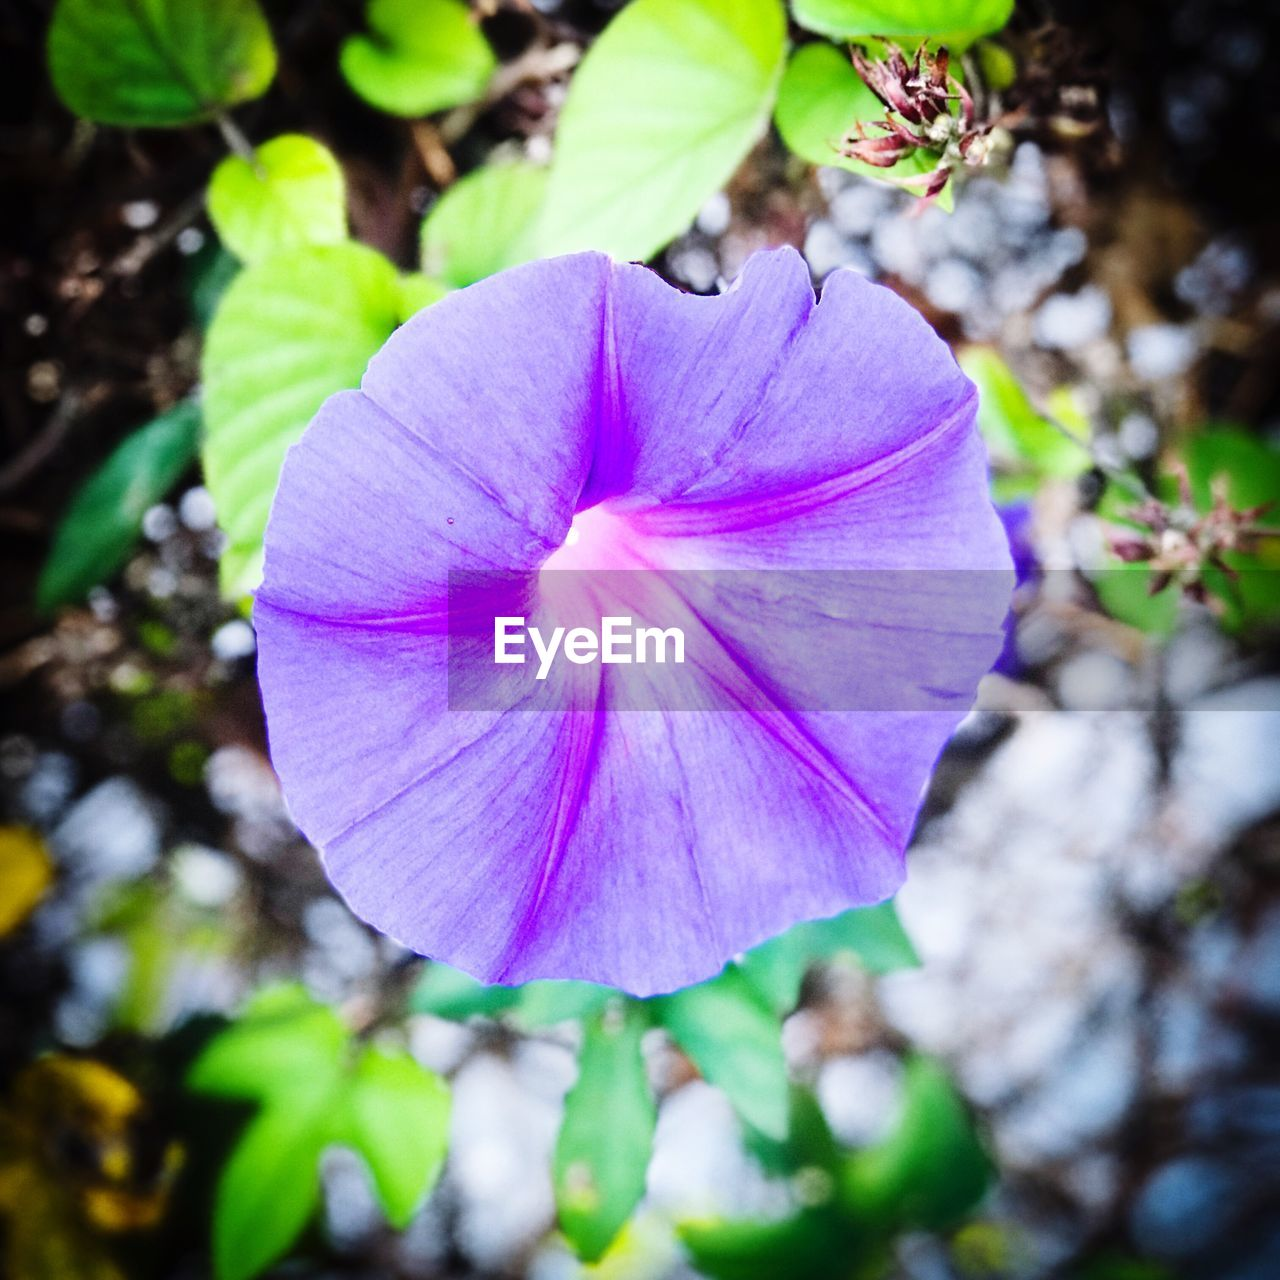 flower, fragility, beauty in nature, petal, nature, freshness, growth, flower head, plant, petunia, close-up, outdoors, day, no people, blooming, pansy